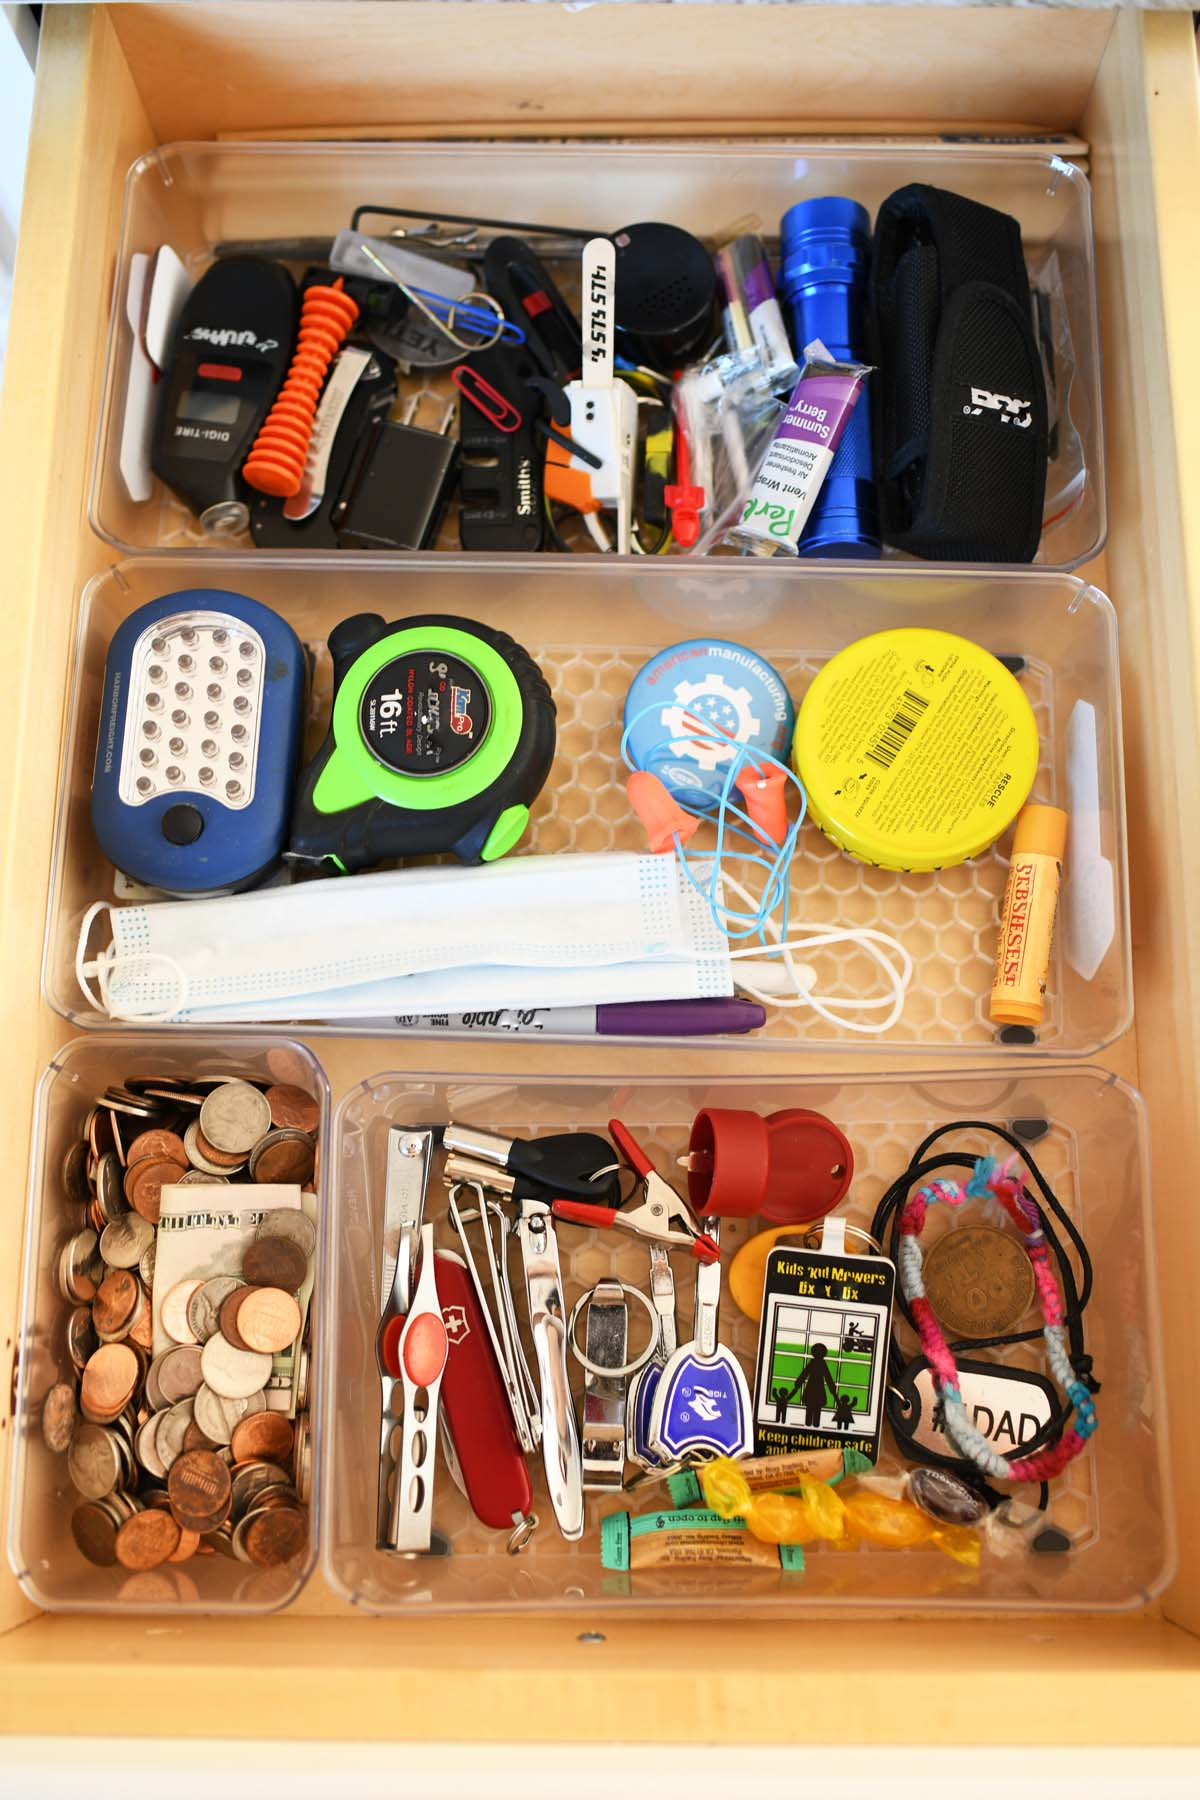 Organized Junk Drawer - A man's organized junk drawer with various tools.